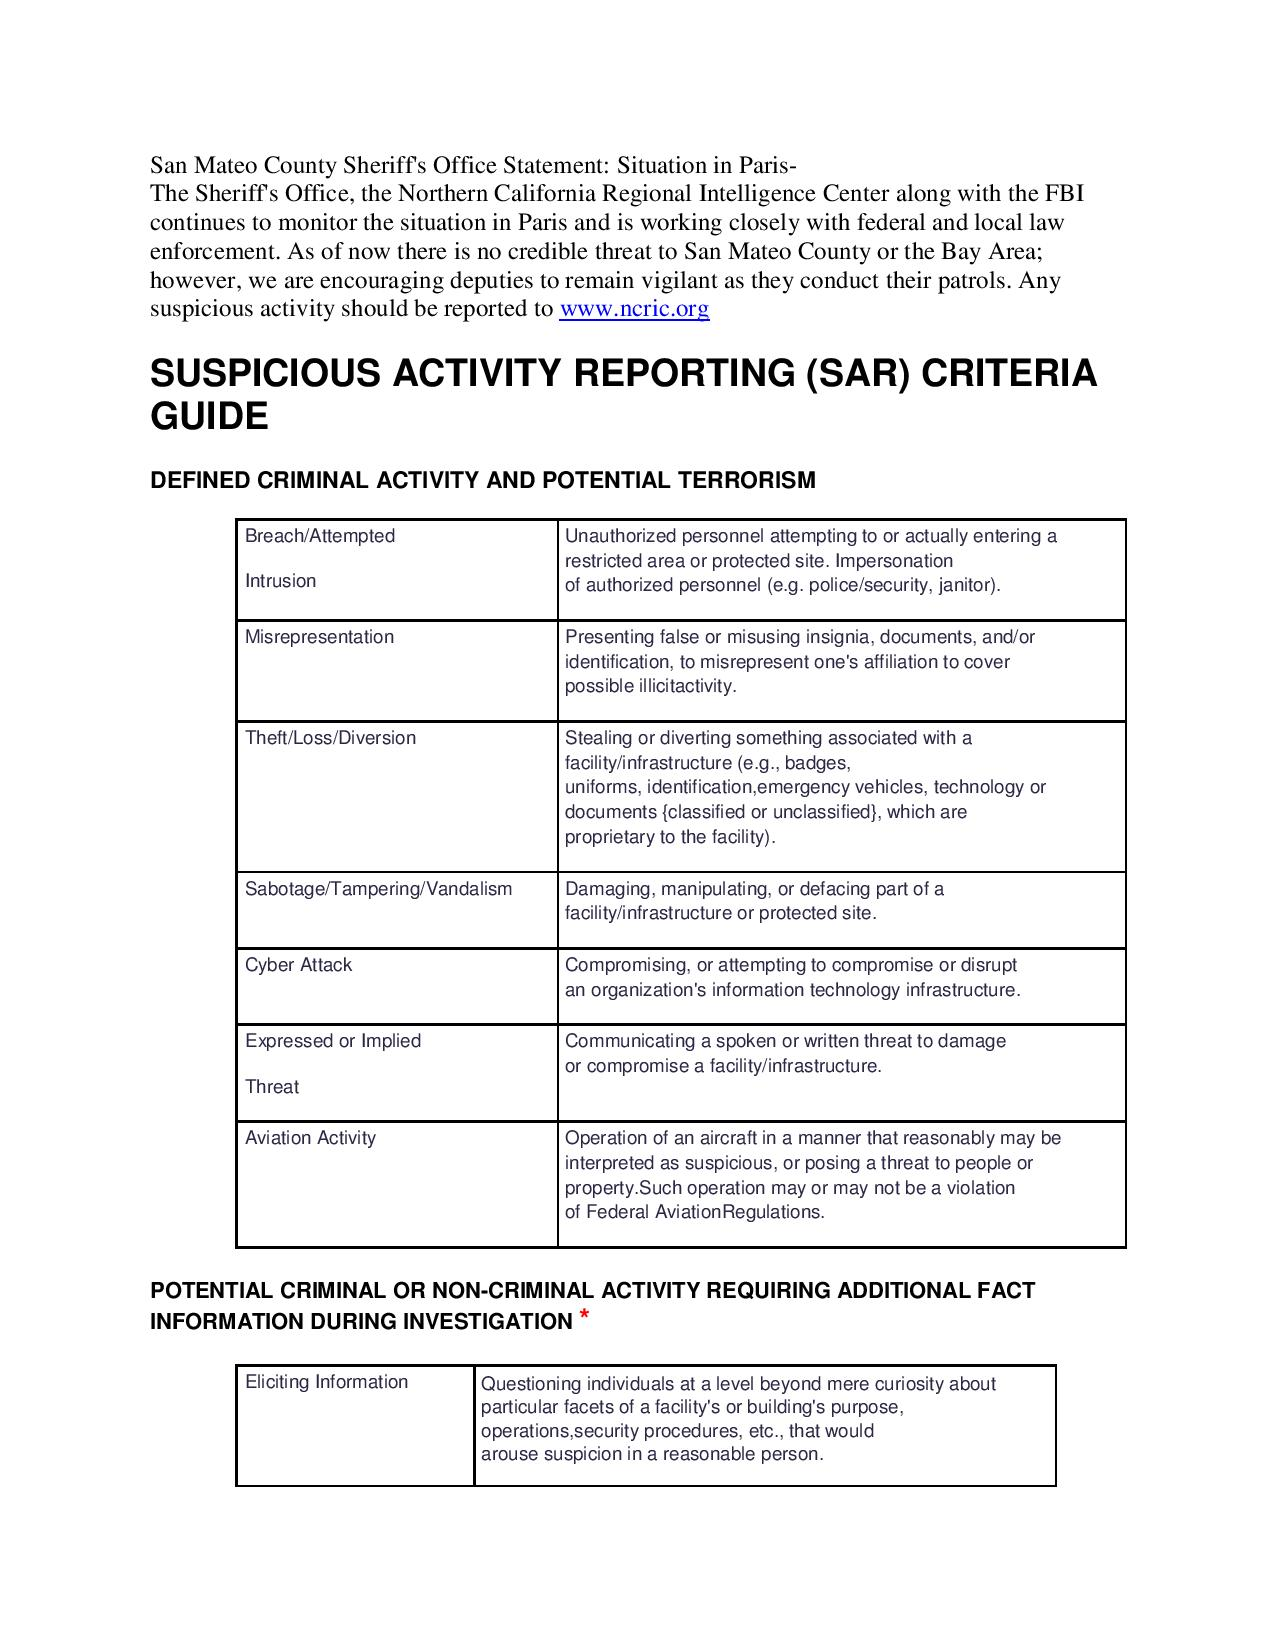 Paris+Terrorist+Attacks+SAR+Guide-page-001